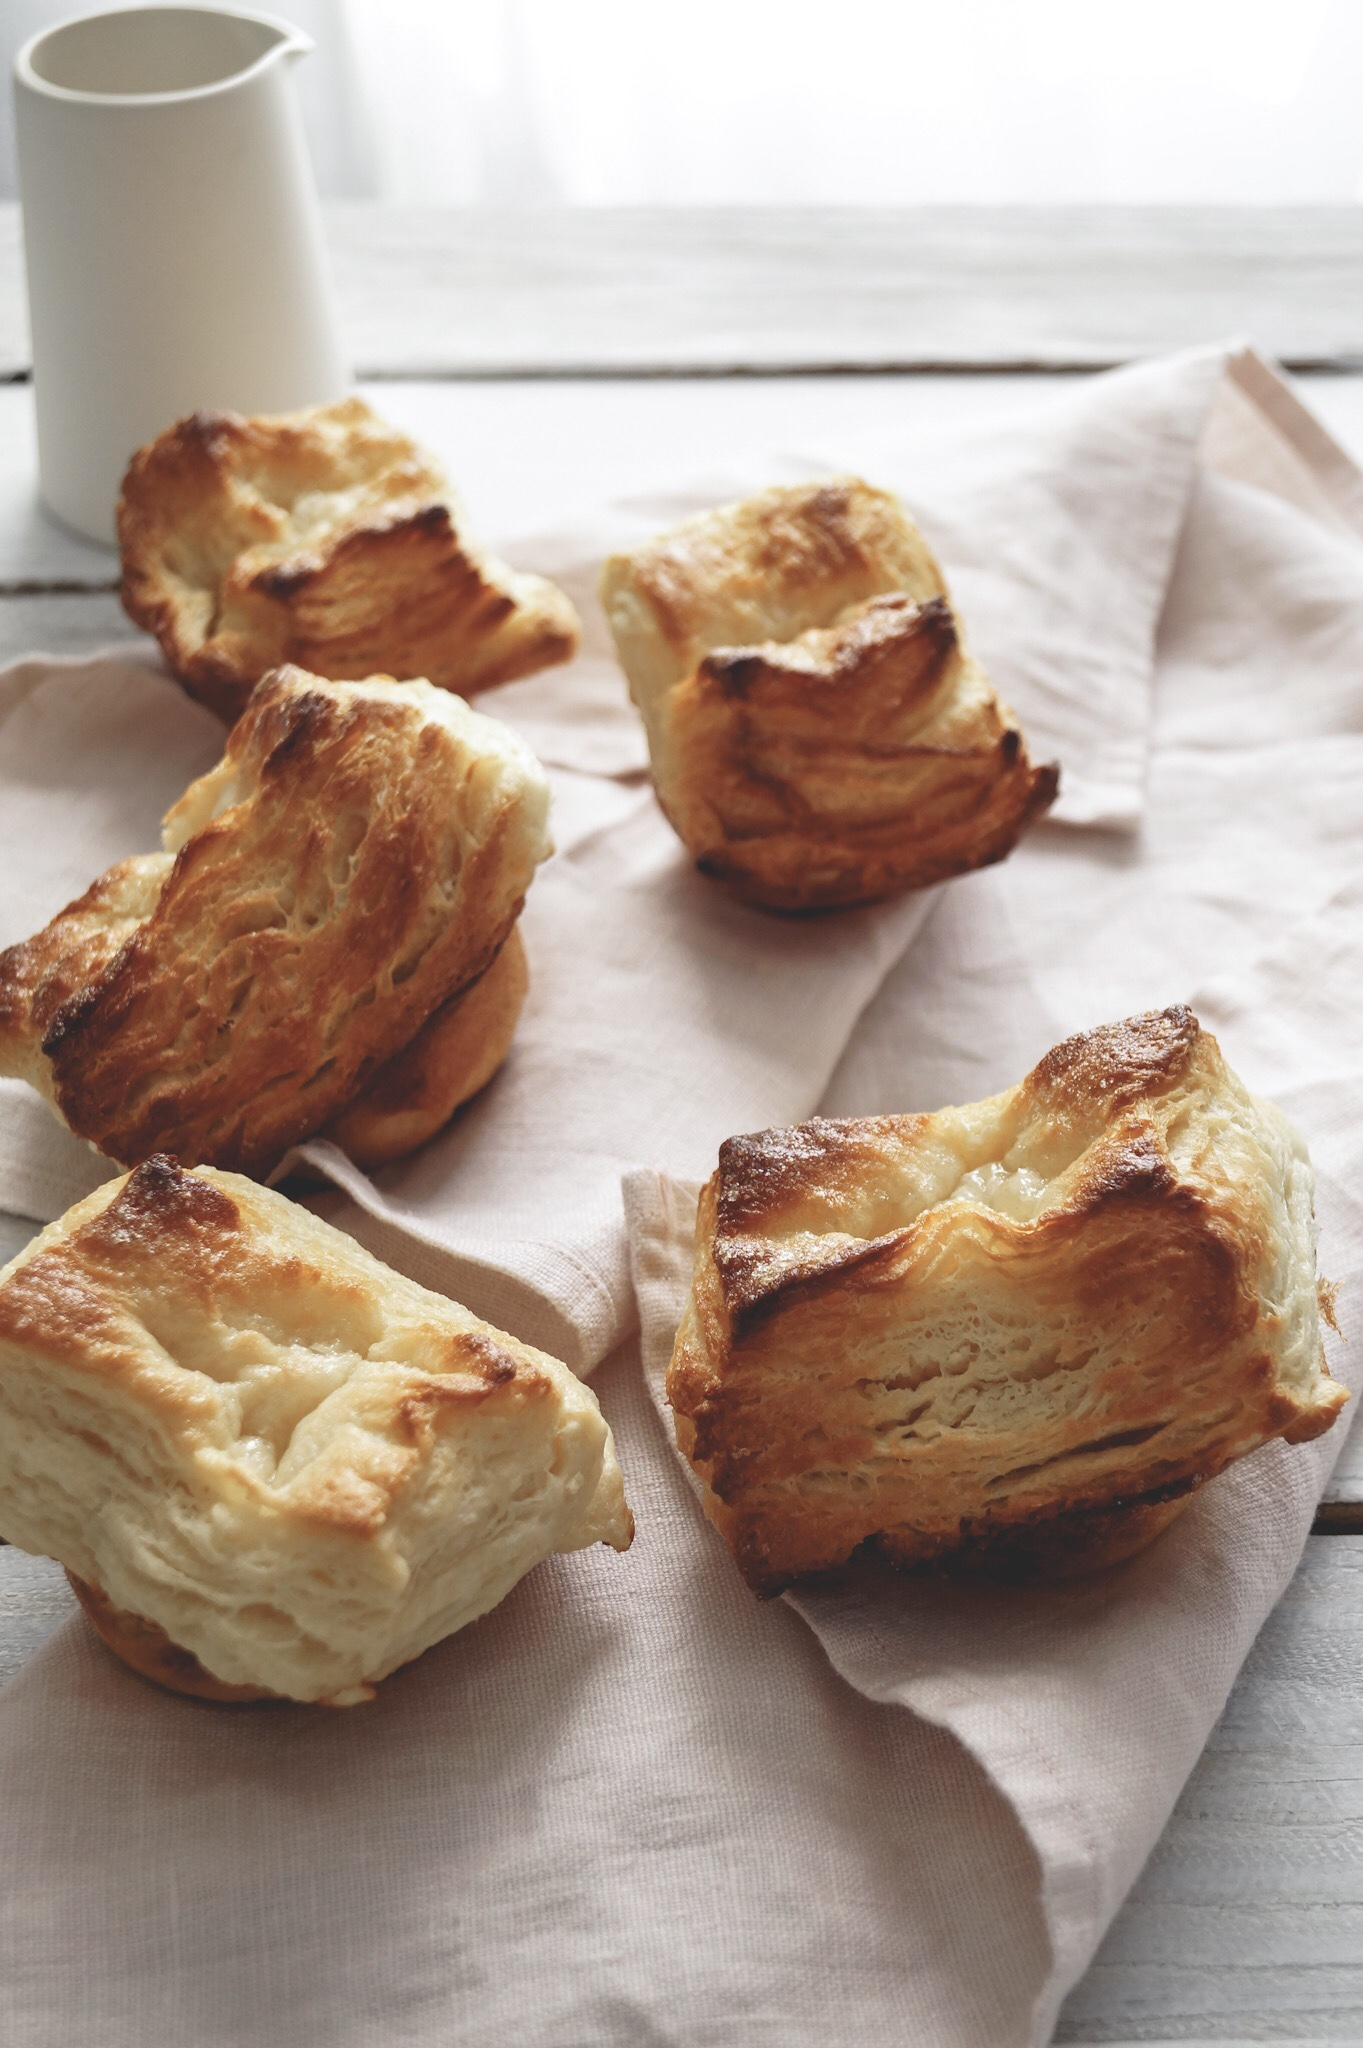 Kouign amann buns, Kouign anamm recipe, panera copycat recipes, baking bread,